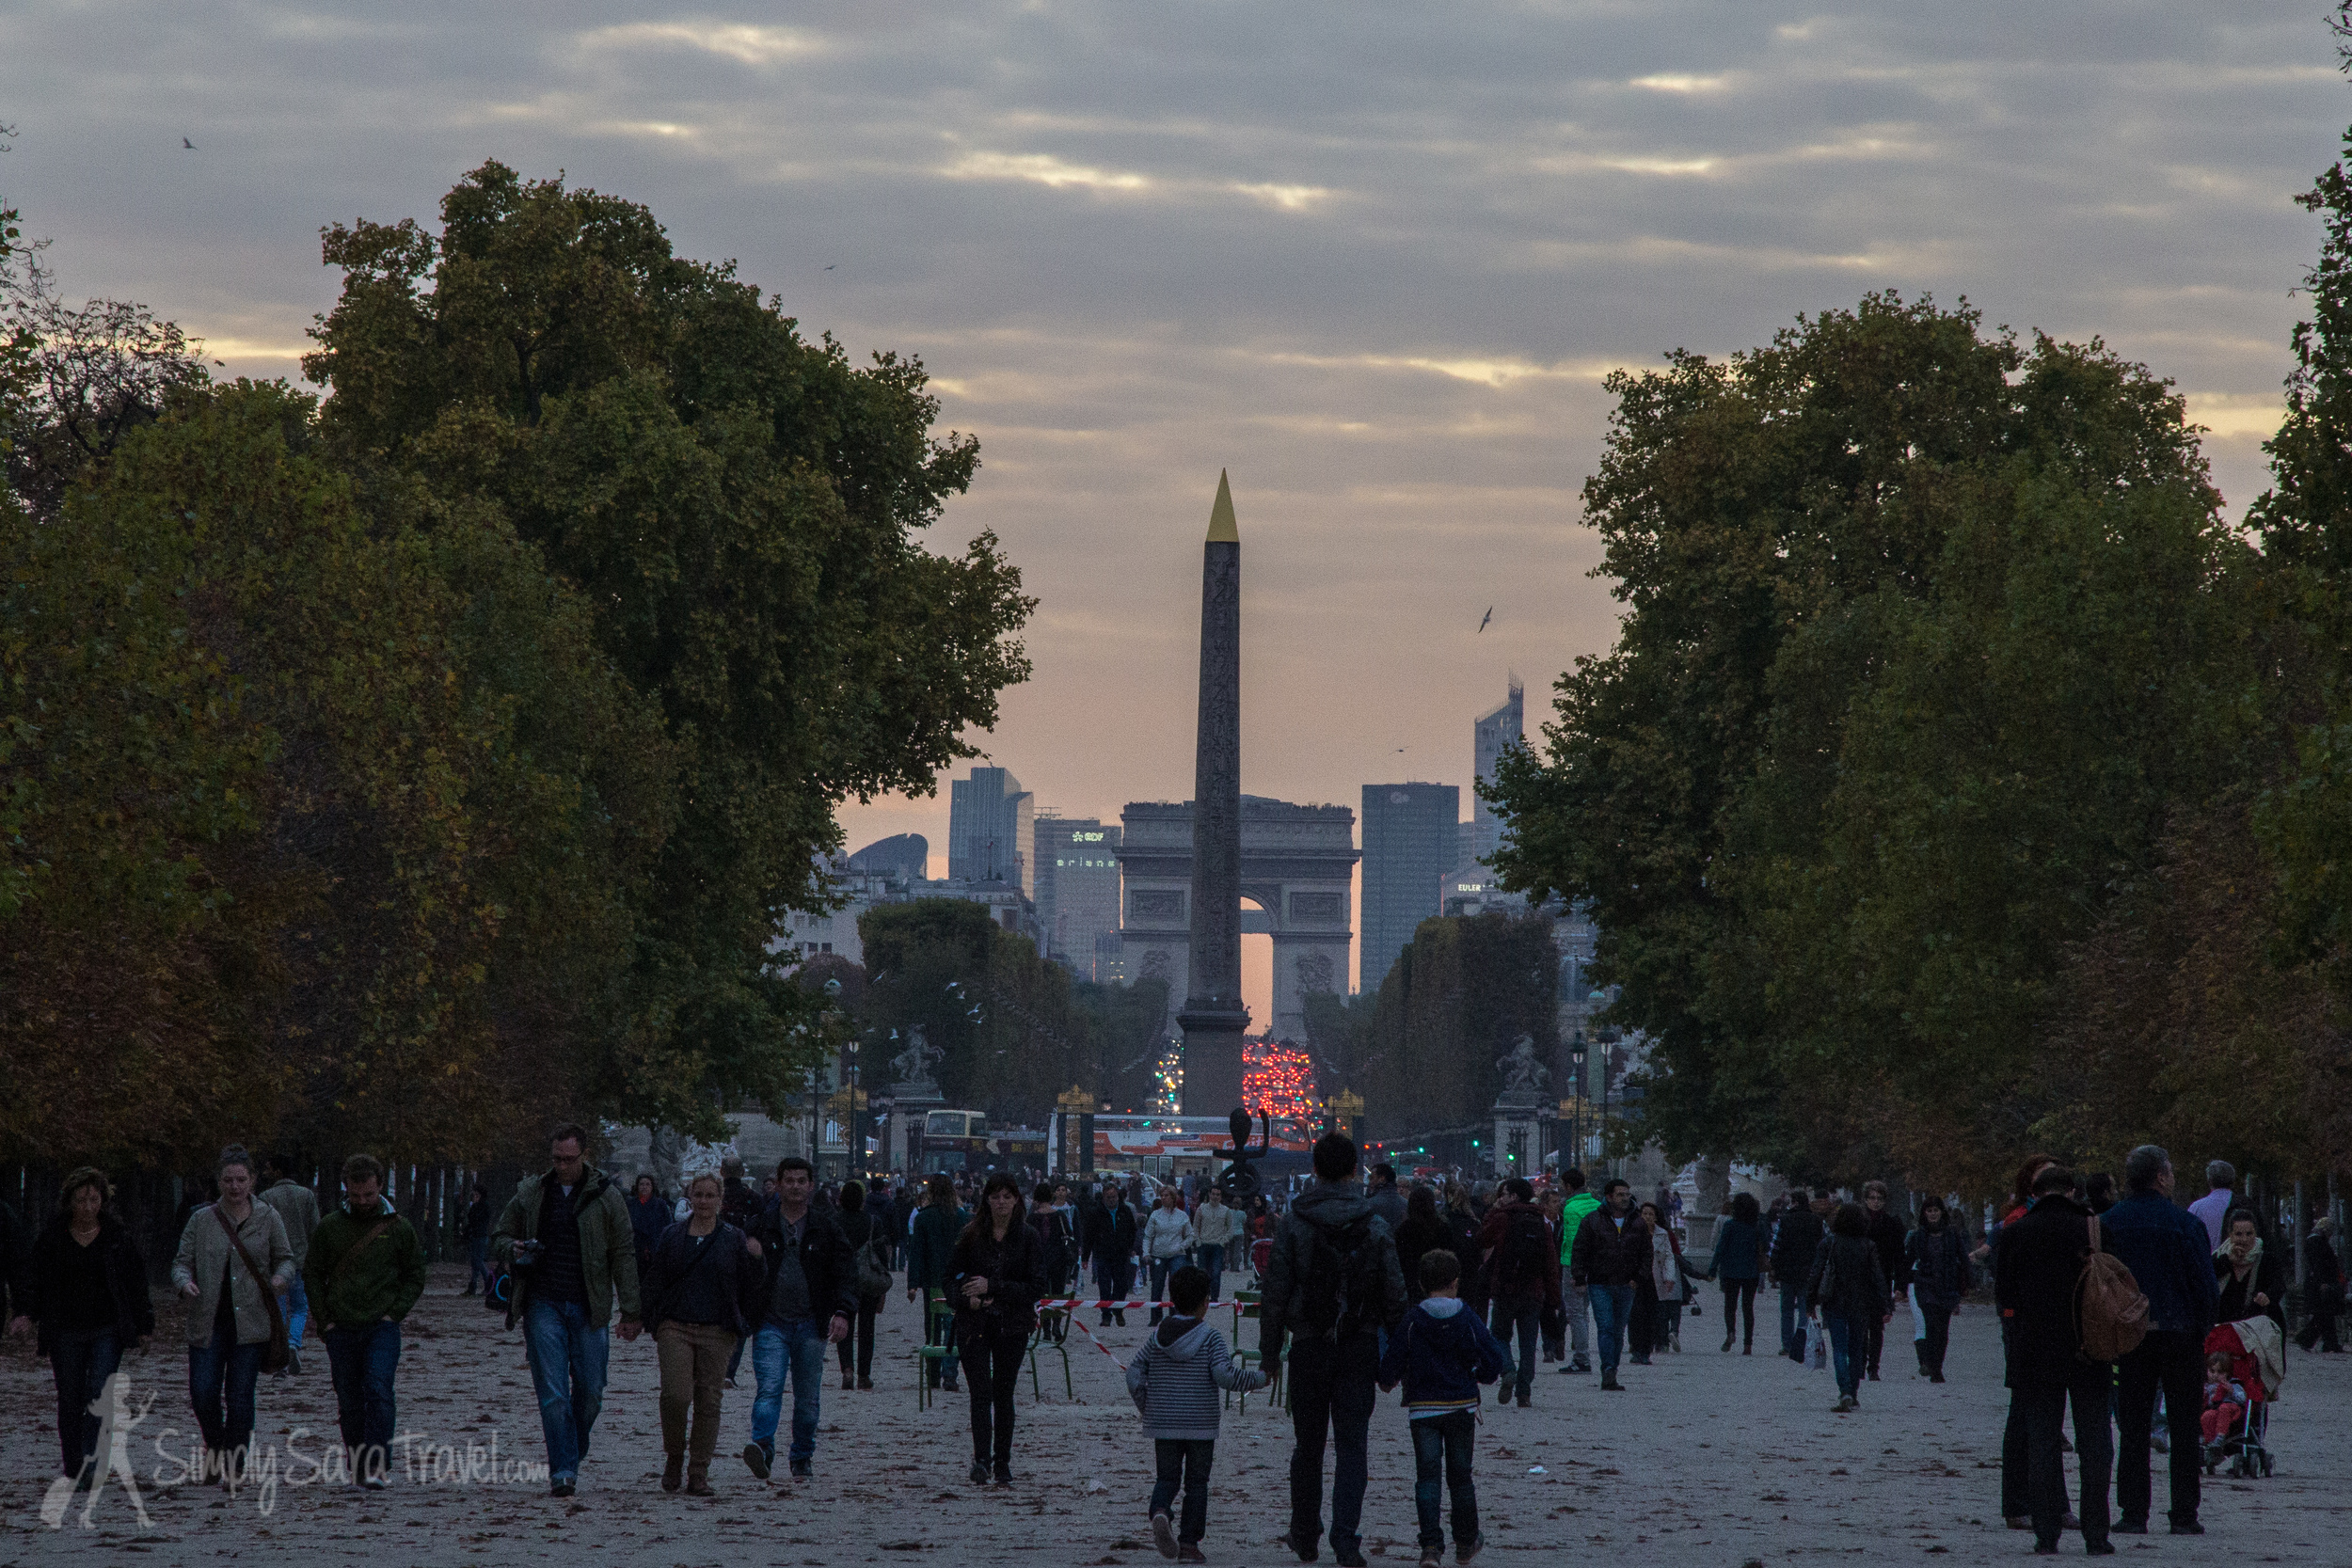 Sunset in Jardin des Tuileries looking towards La Defense